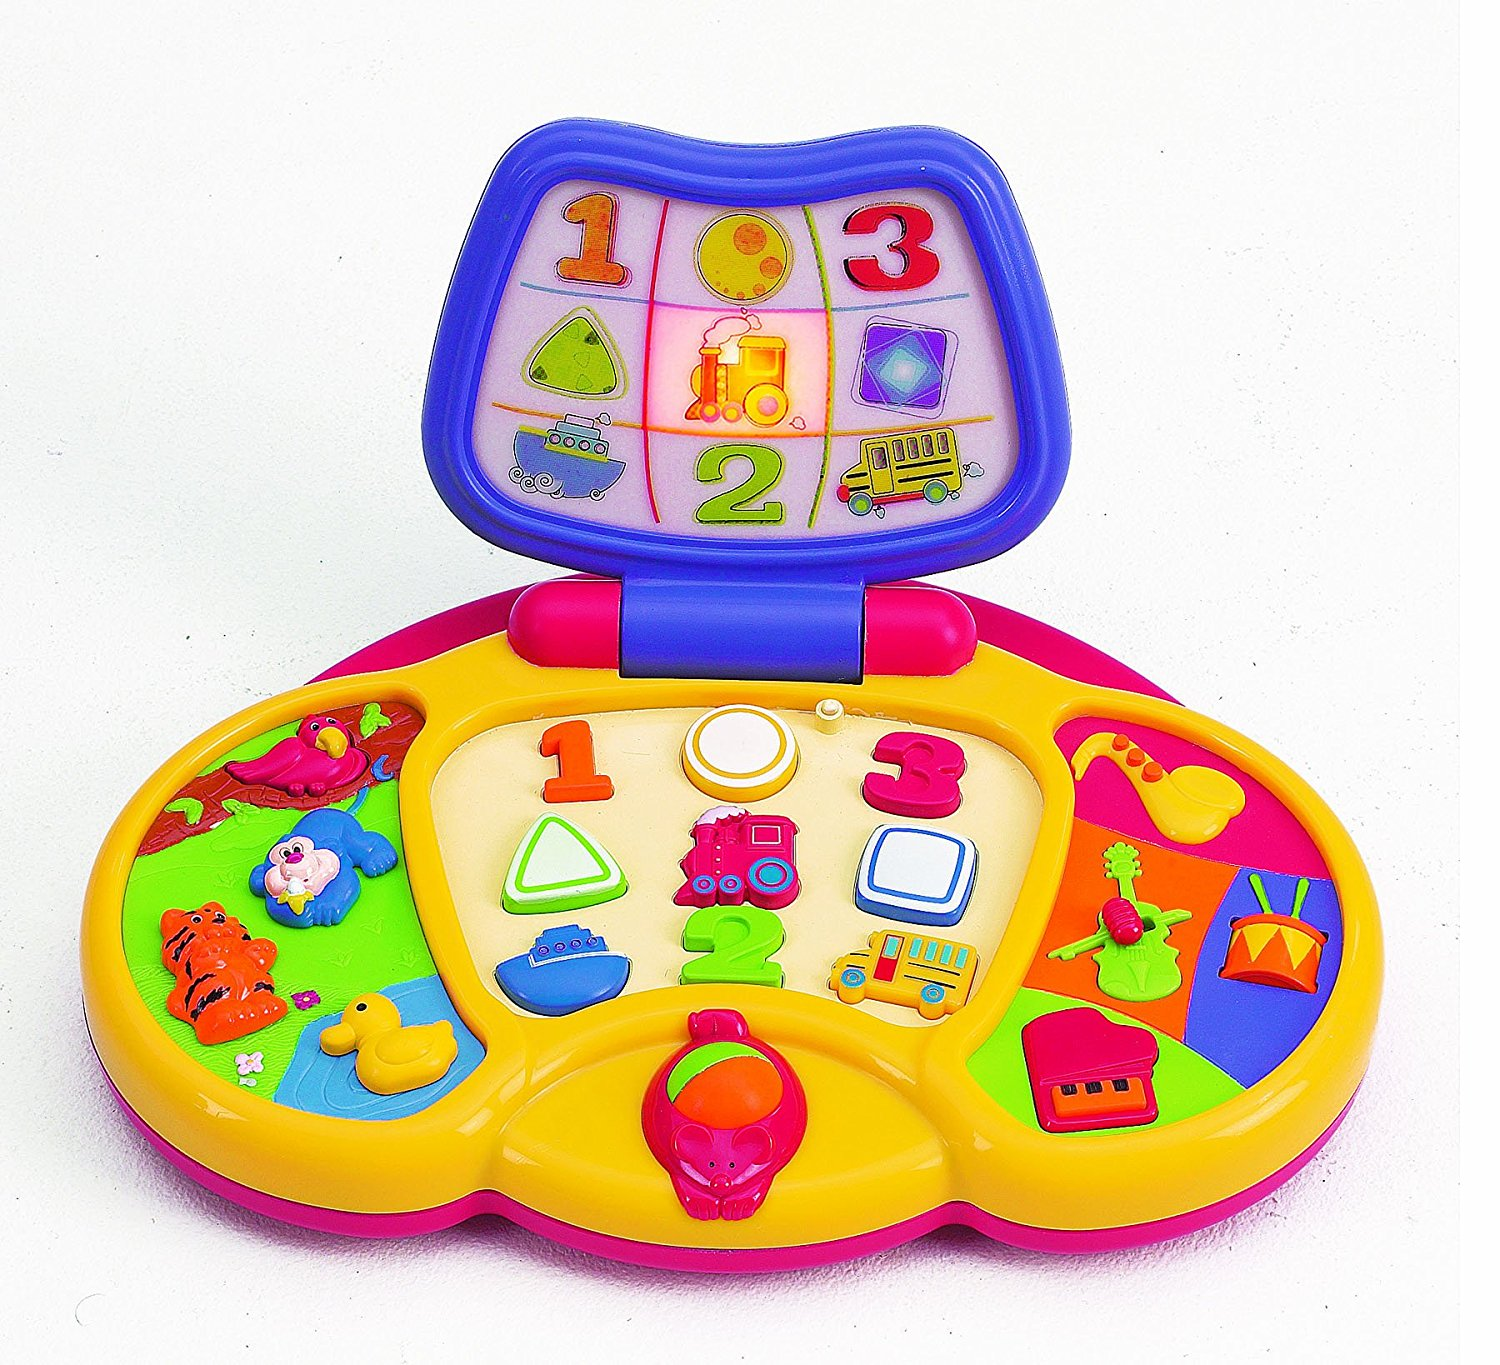 Preschool First Laptop B O, The Preschool Laptop from Small World Toys packs a lot of learning activities into... by